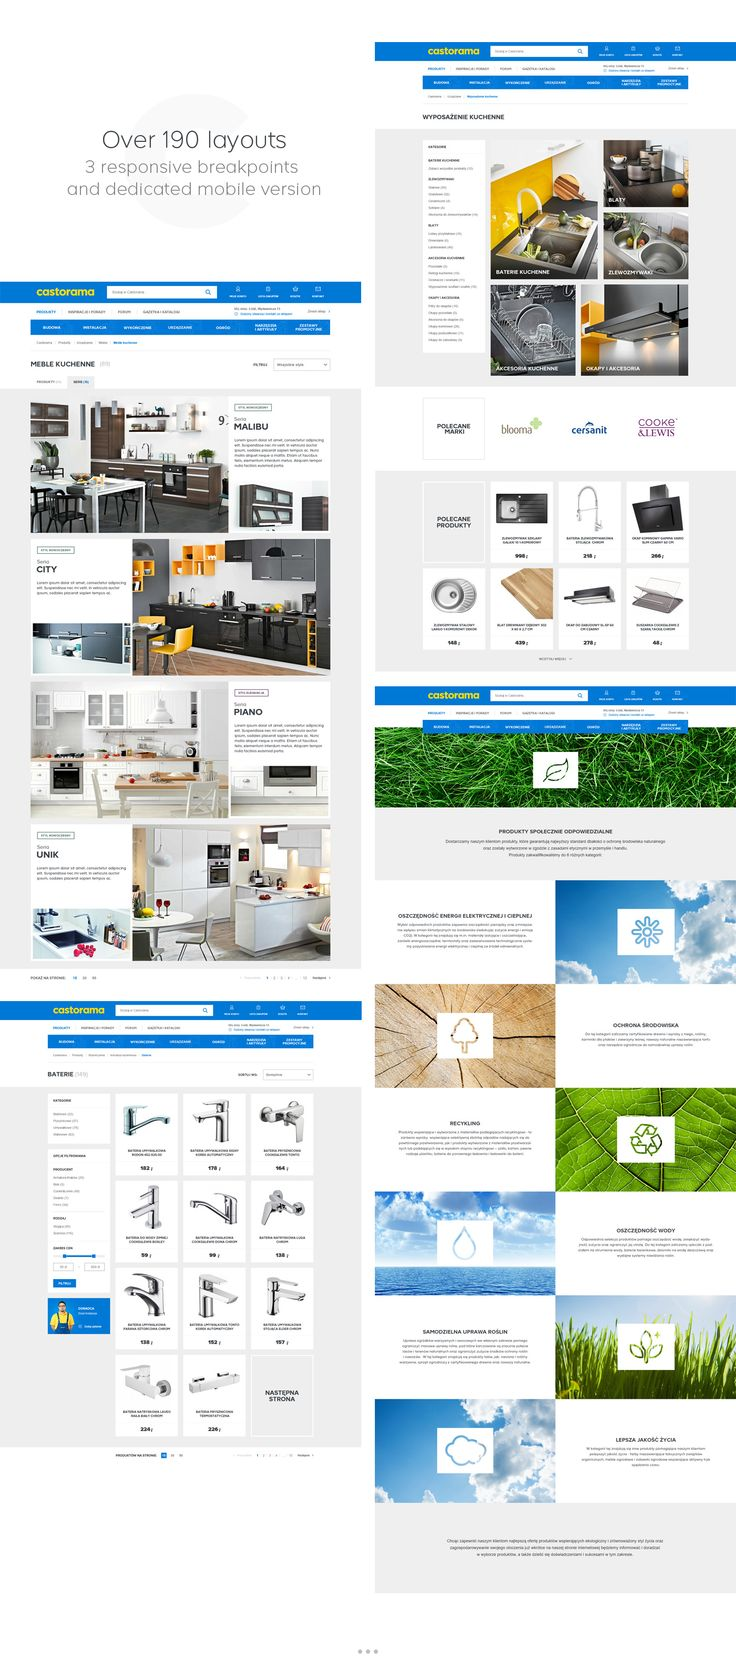 Castorama is the biggest home improvement chain store in Poland (79 locations). Redesign of castorama.pl included both functional and technical aspects, but also a visual change. We were responsible for visual design and parts of user experience design.